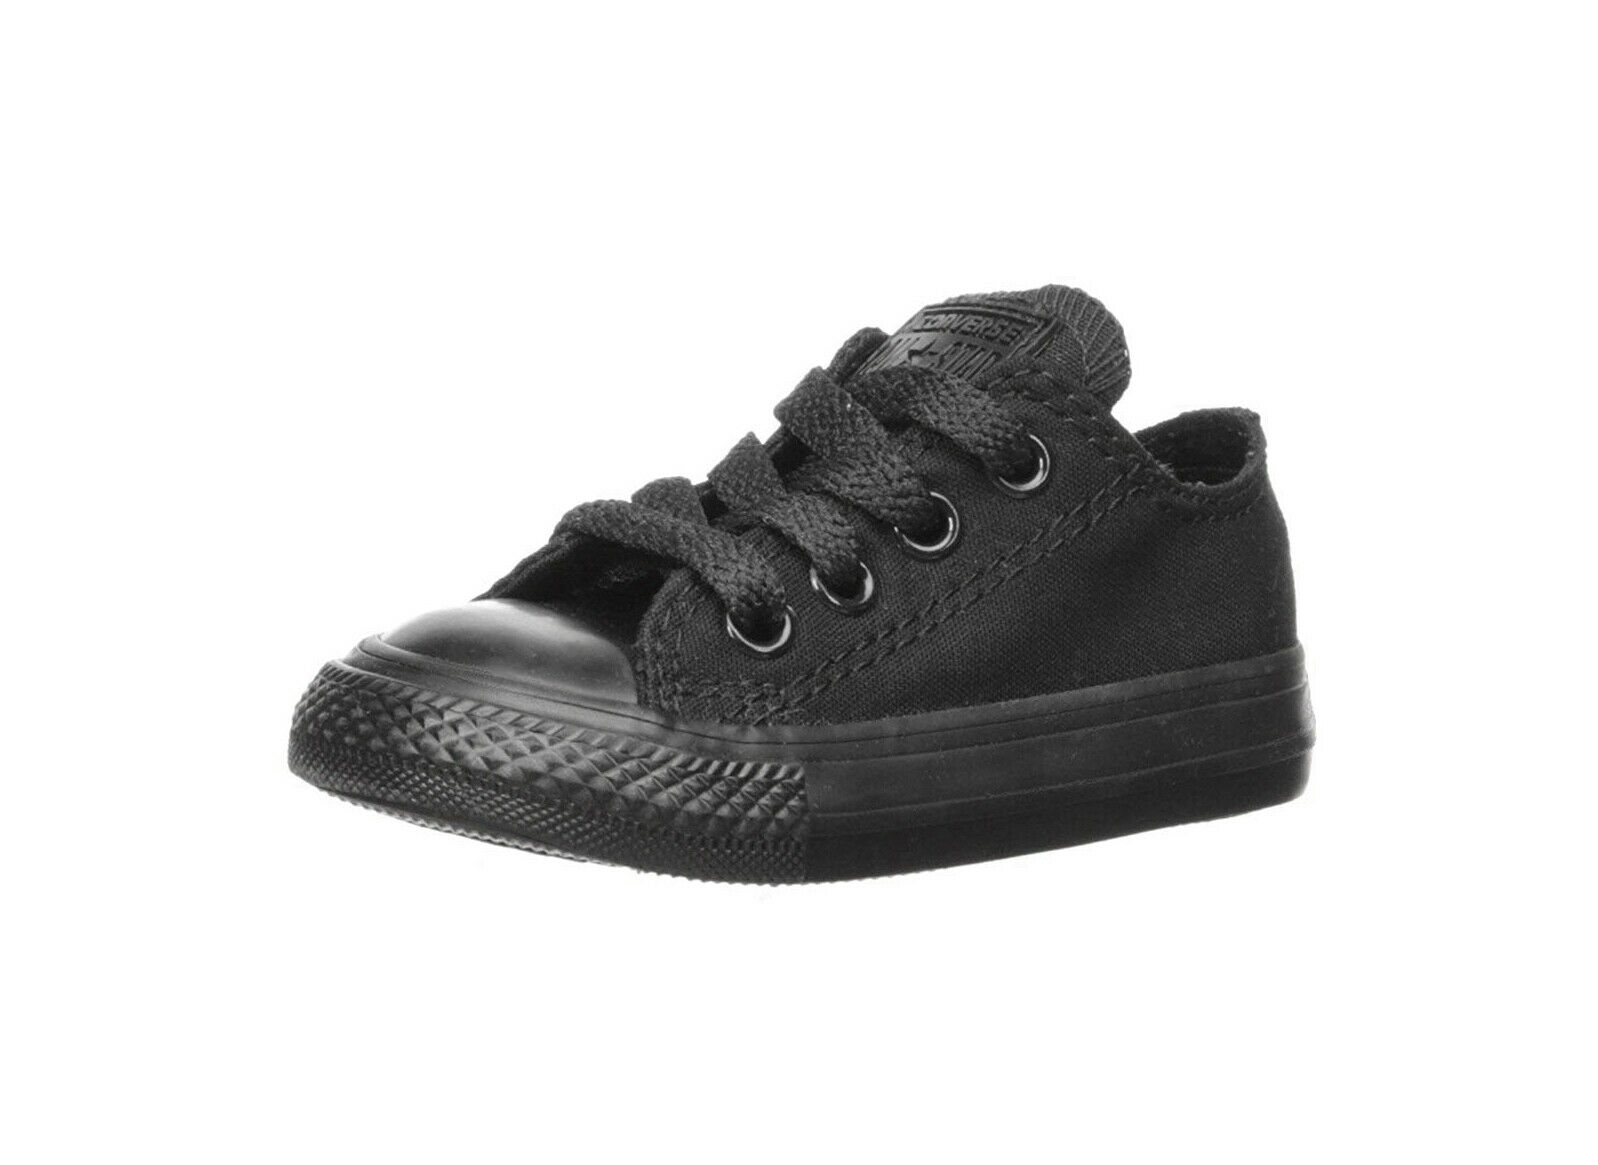 Converse All Star Low Chucks Infant Toddler All Black Canvas Boys Shoes 714786F